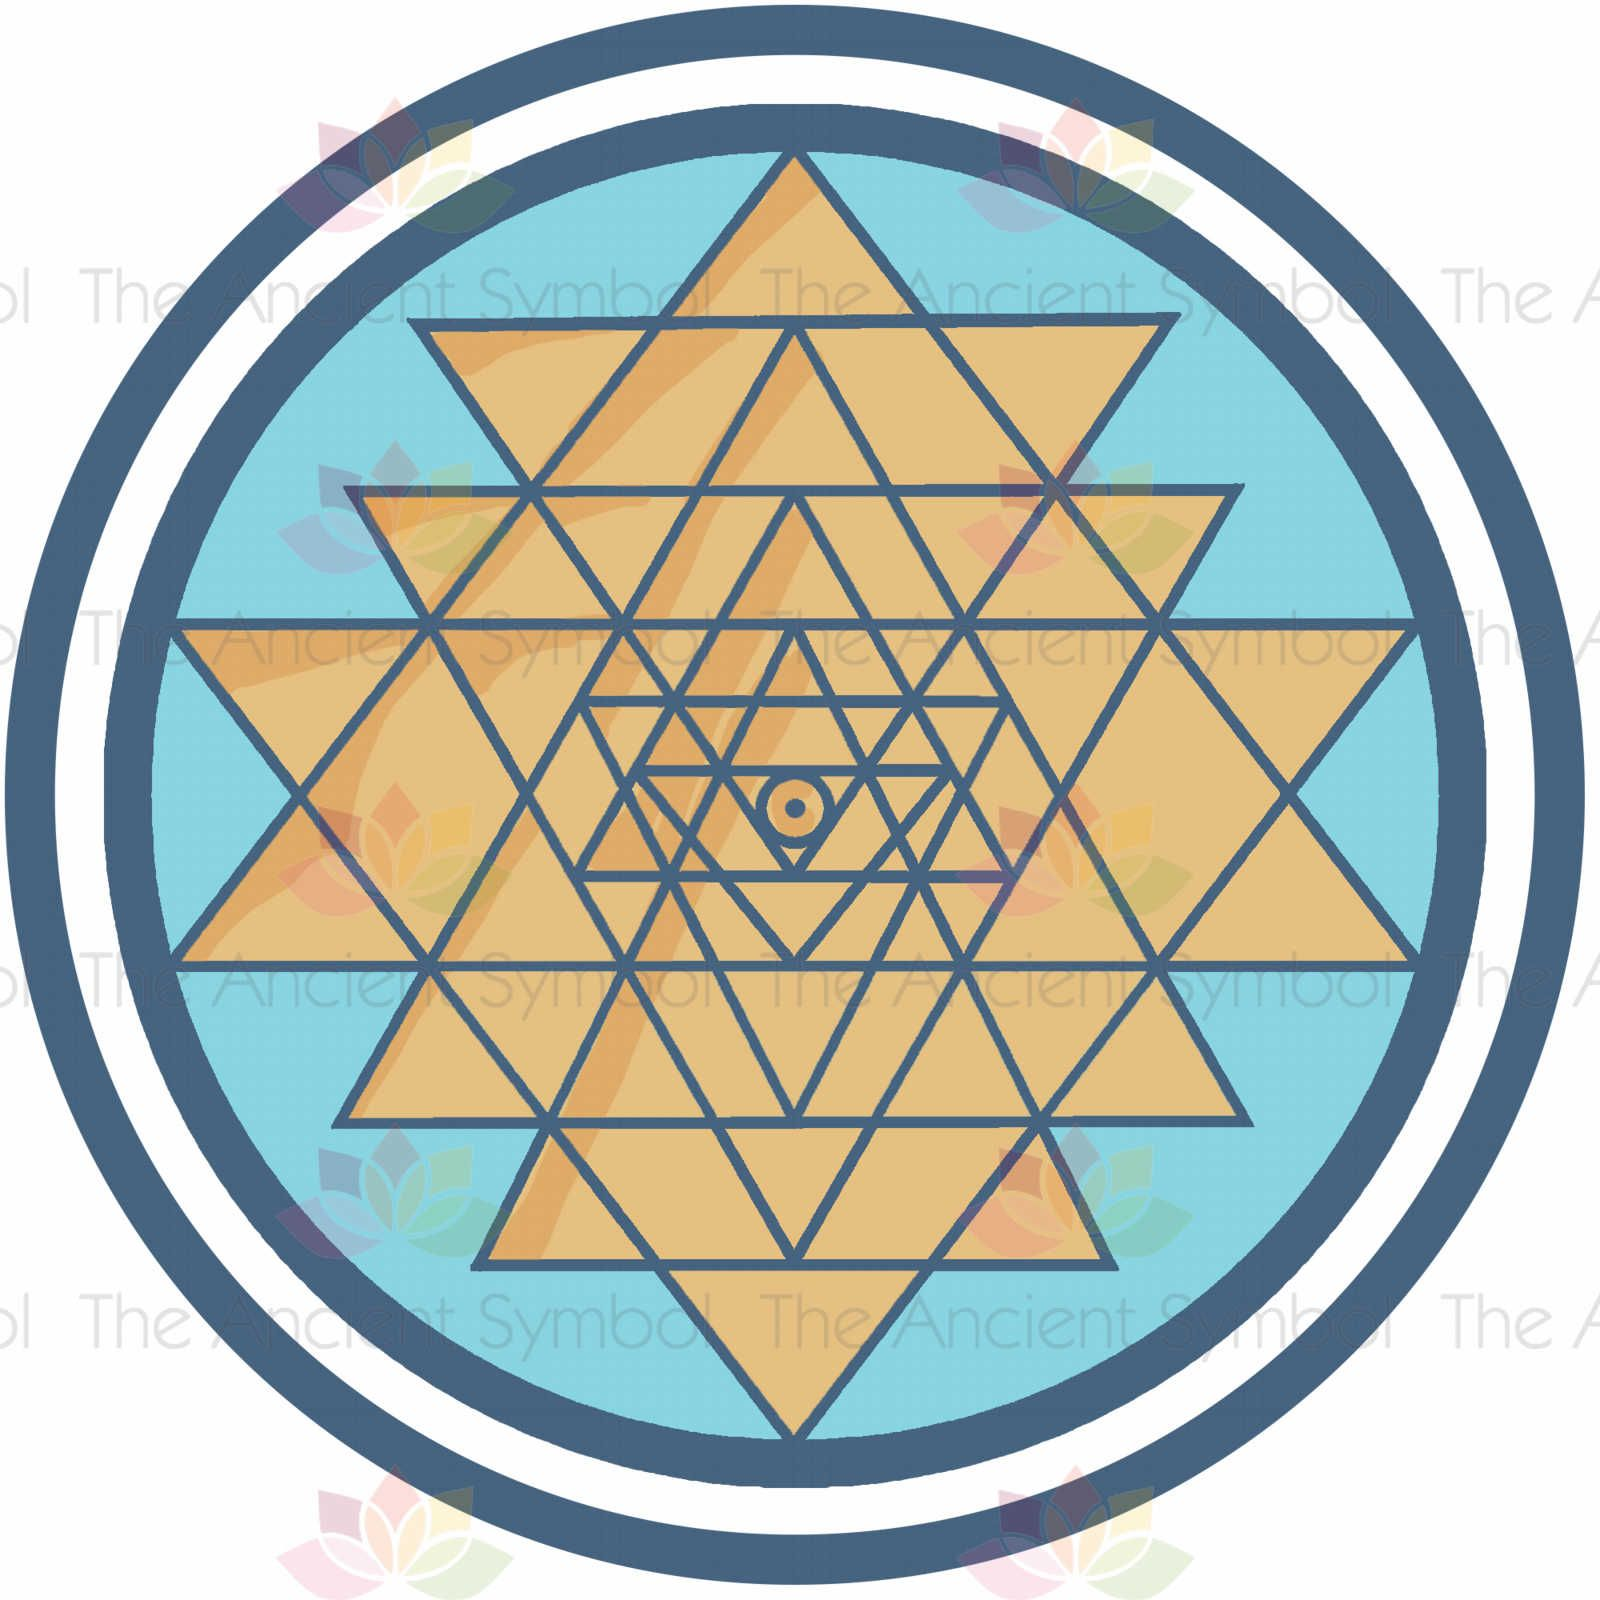 10c7489b0849e0ac80ebf3b6d9a4e393 the sri yantra or sri chakra is a form of mystical diagram used in